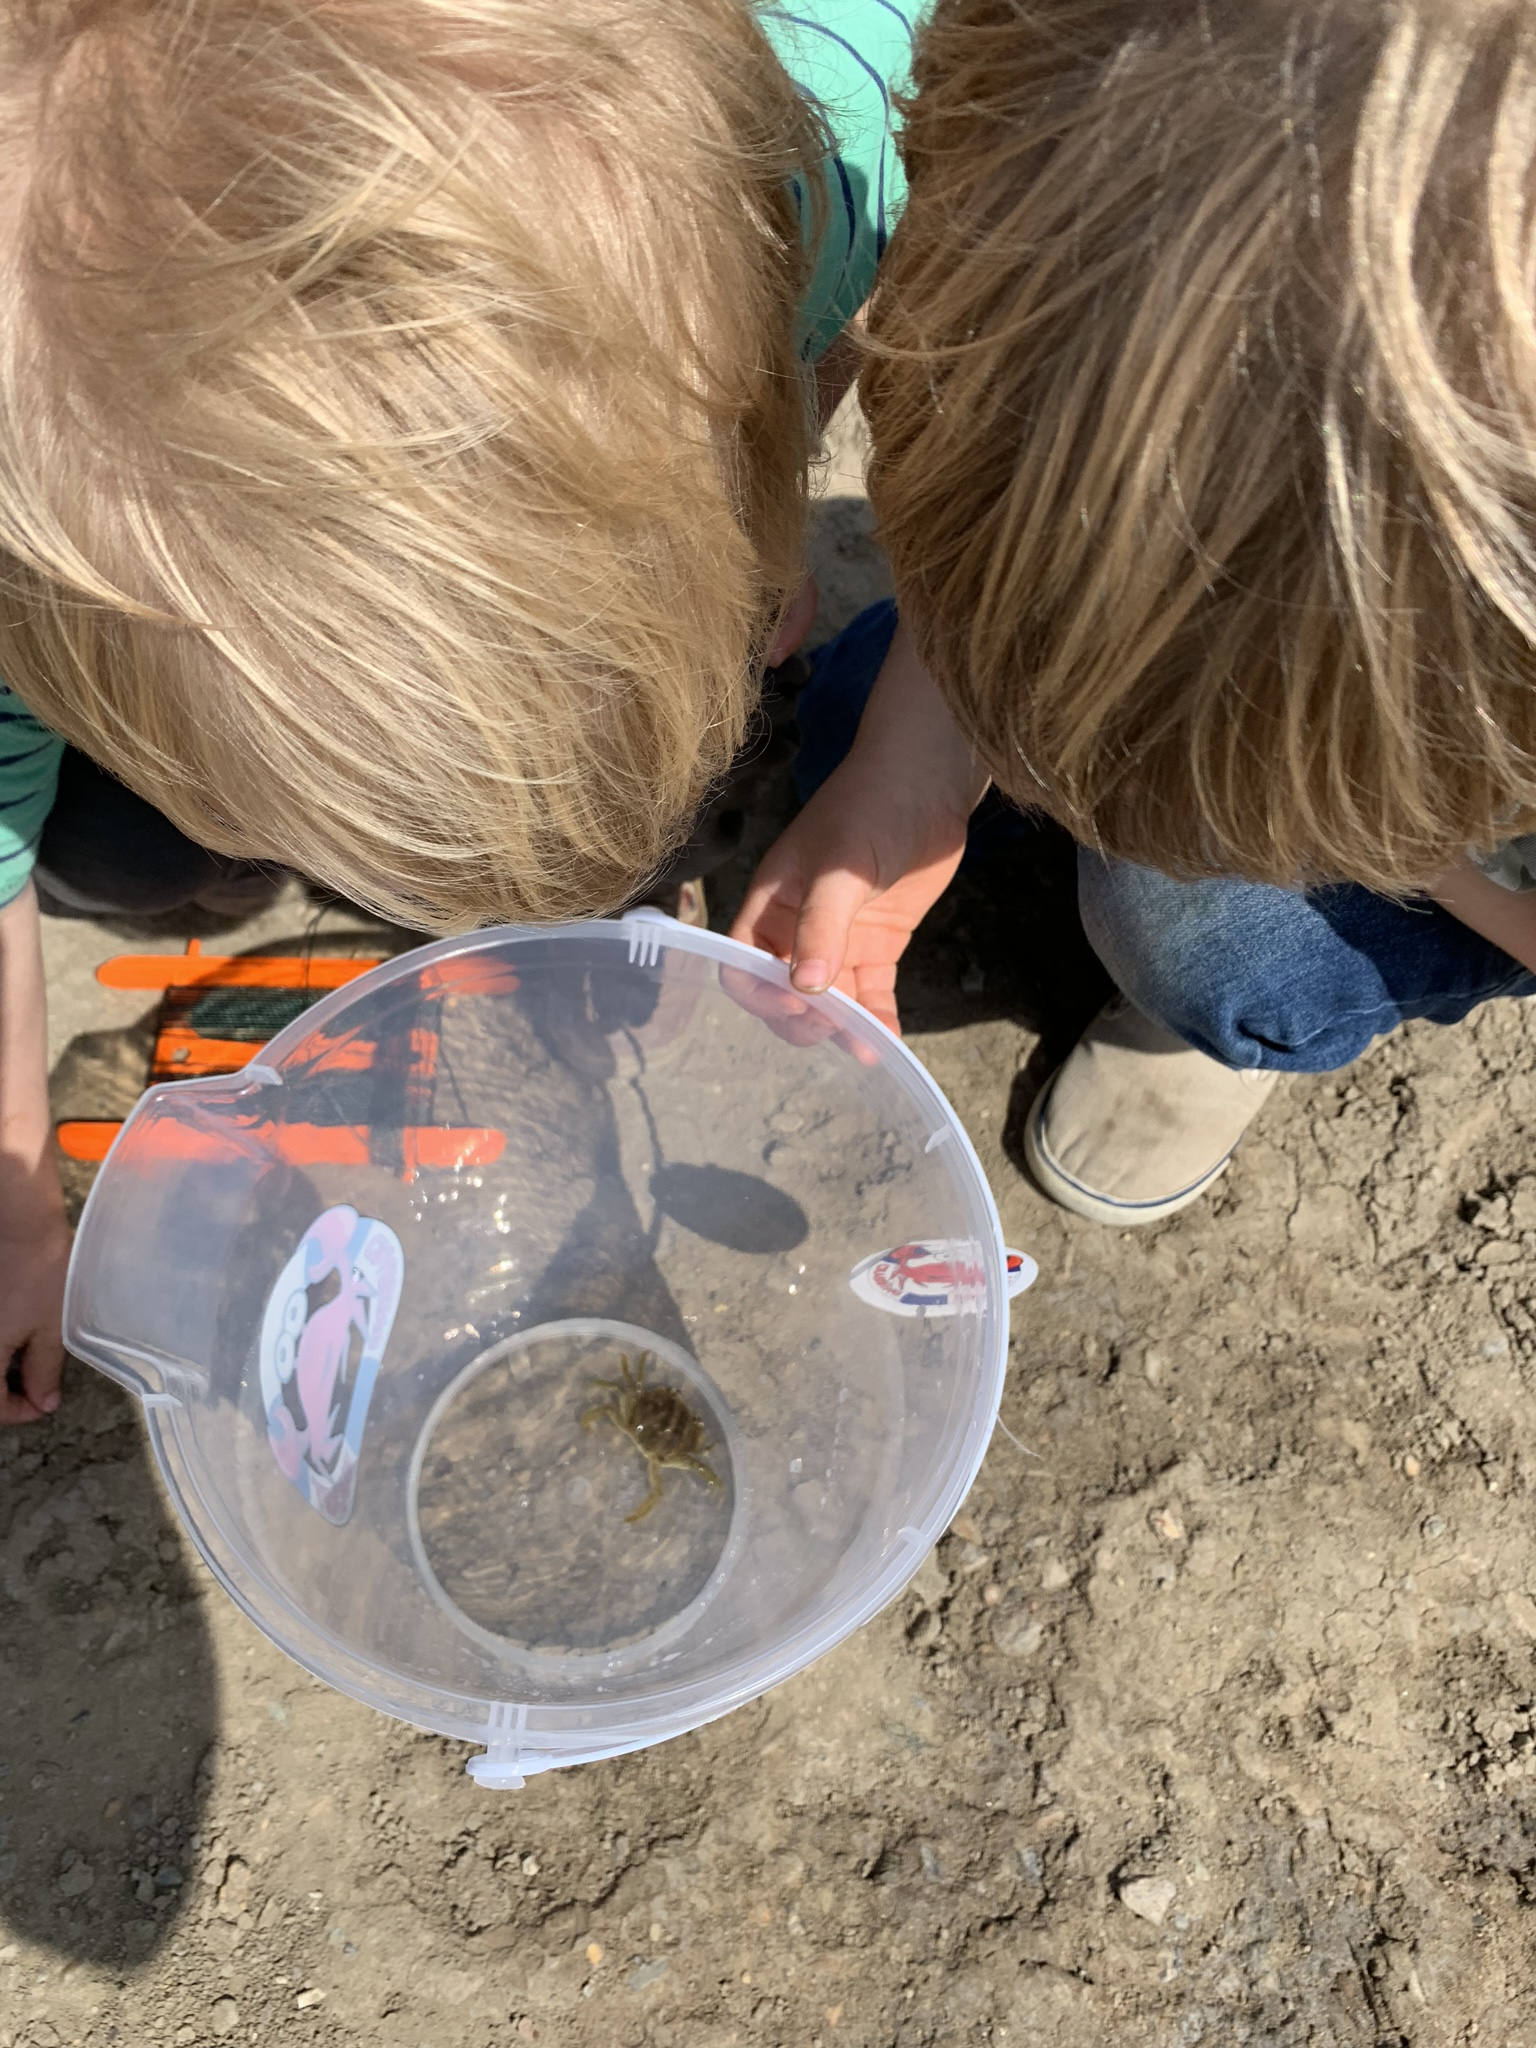 Crabbing in Walberswick, boys look at crab in bucket